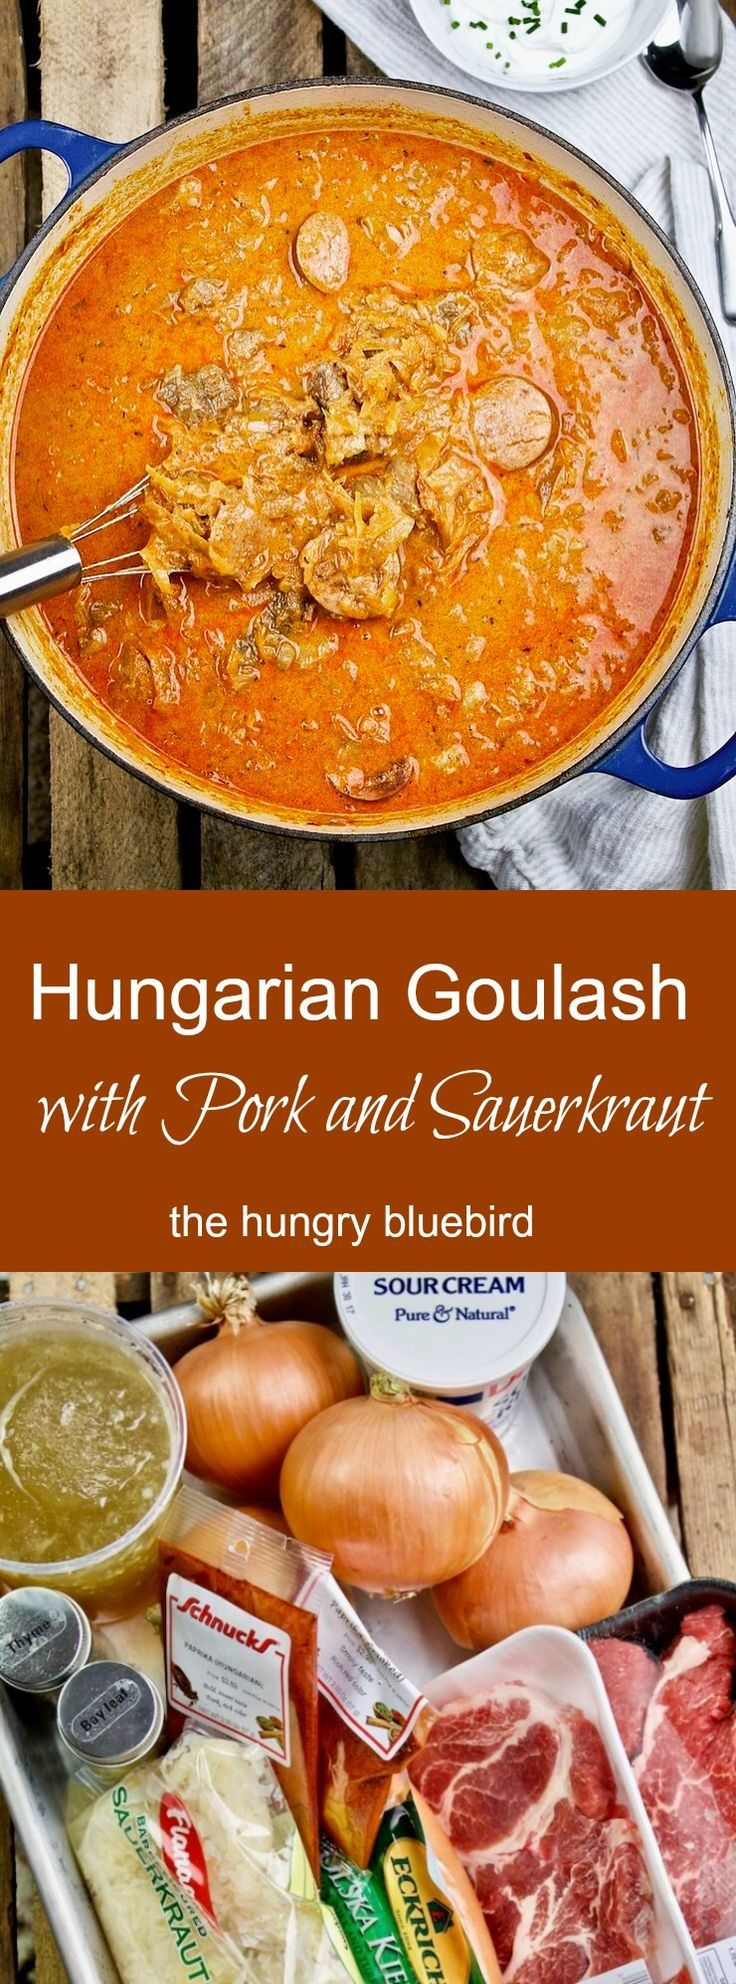 Hungarian Goulash with Pork and Sauerkraut